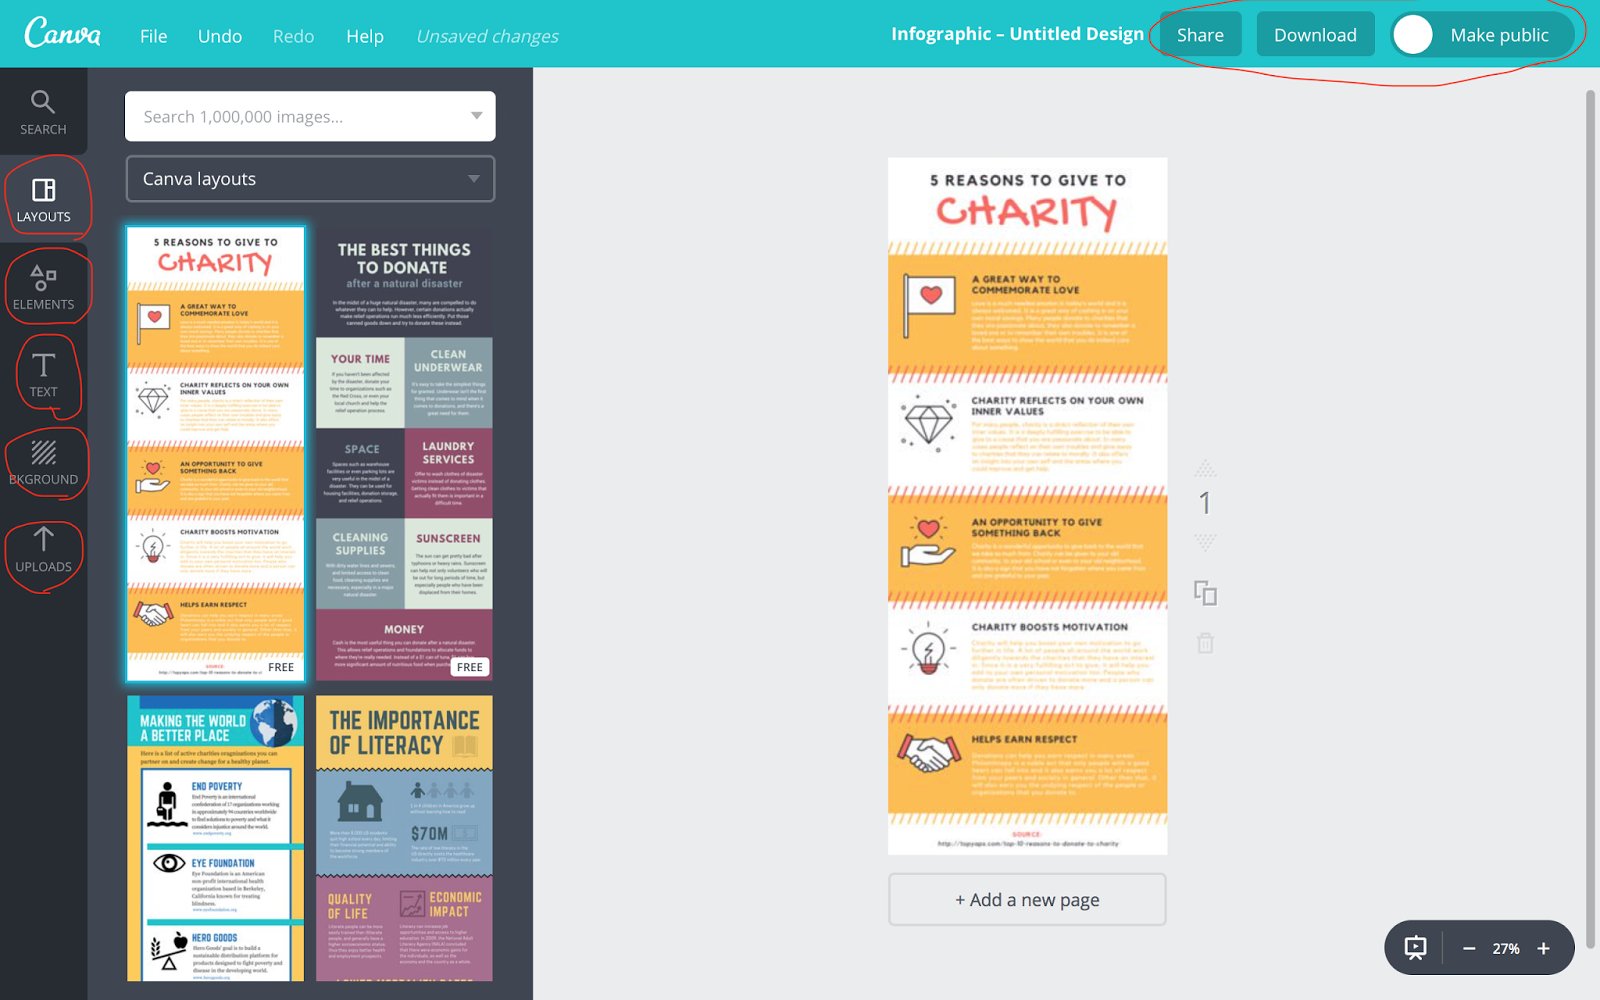 XiaohanZang's Blogger: How to use Canva to construct the